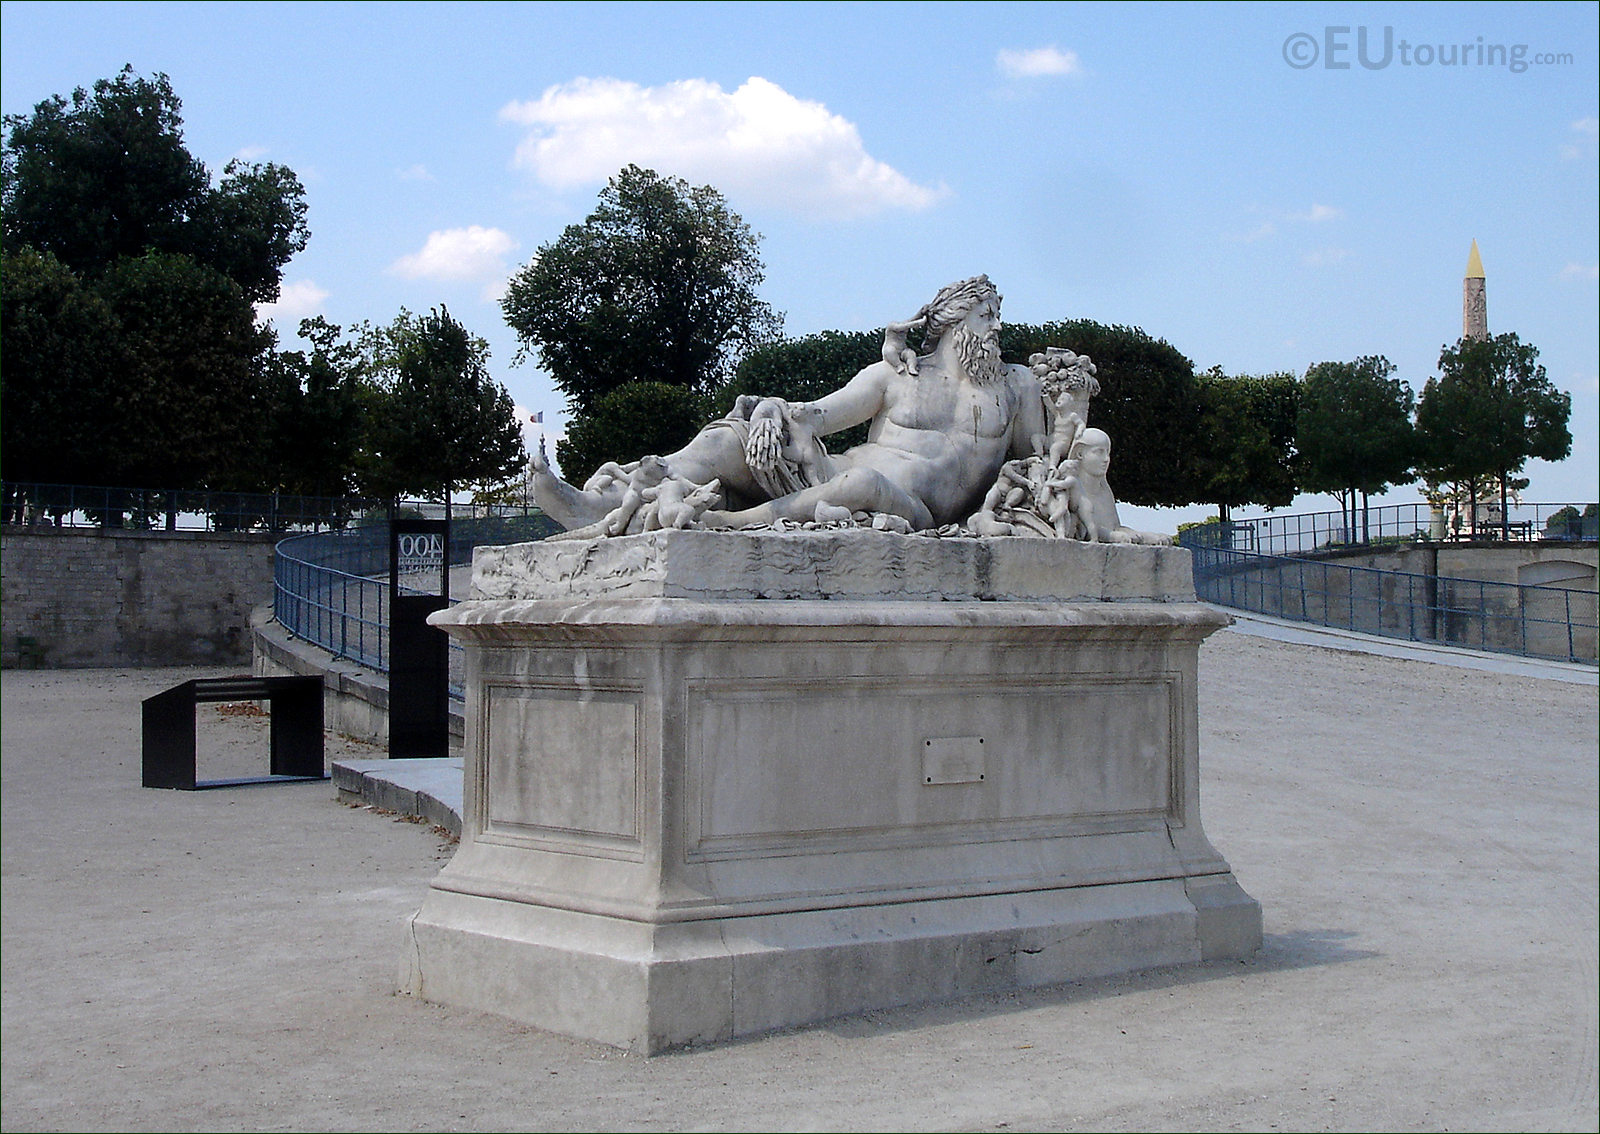 Photos of the nile statue in jardin des tuileries paris for Jardins jardins des tuileries